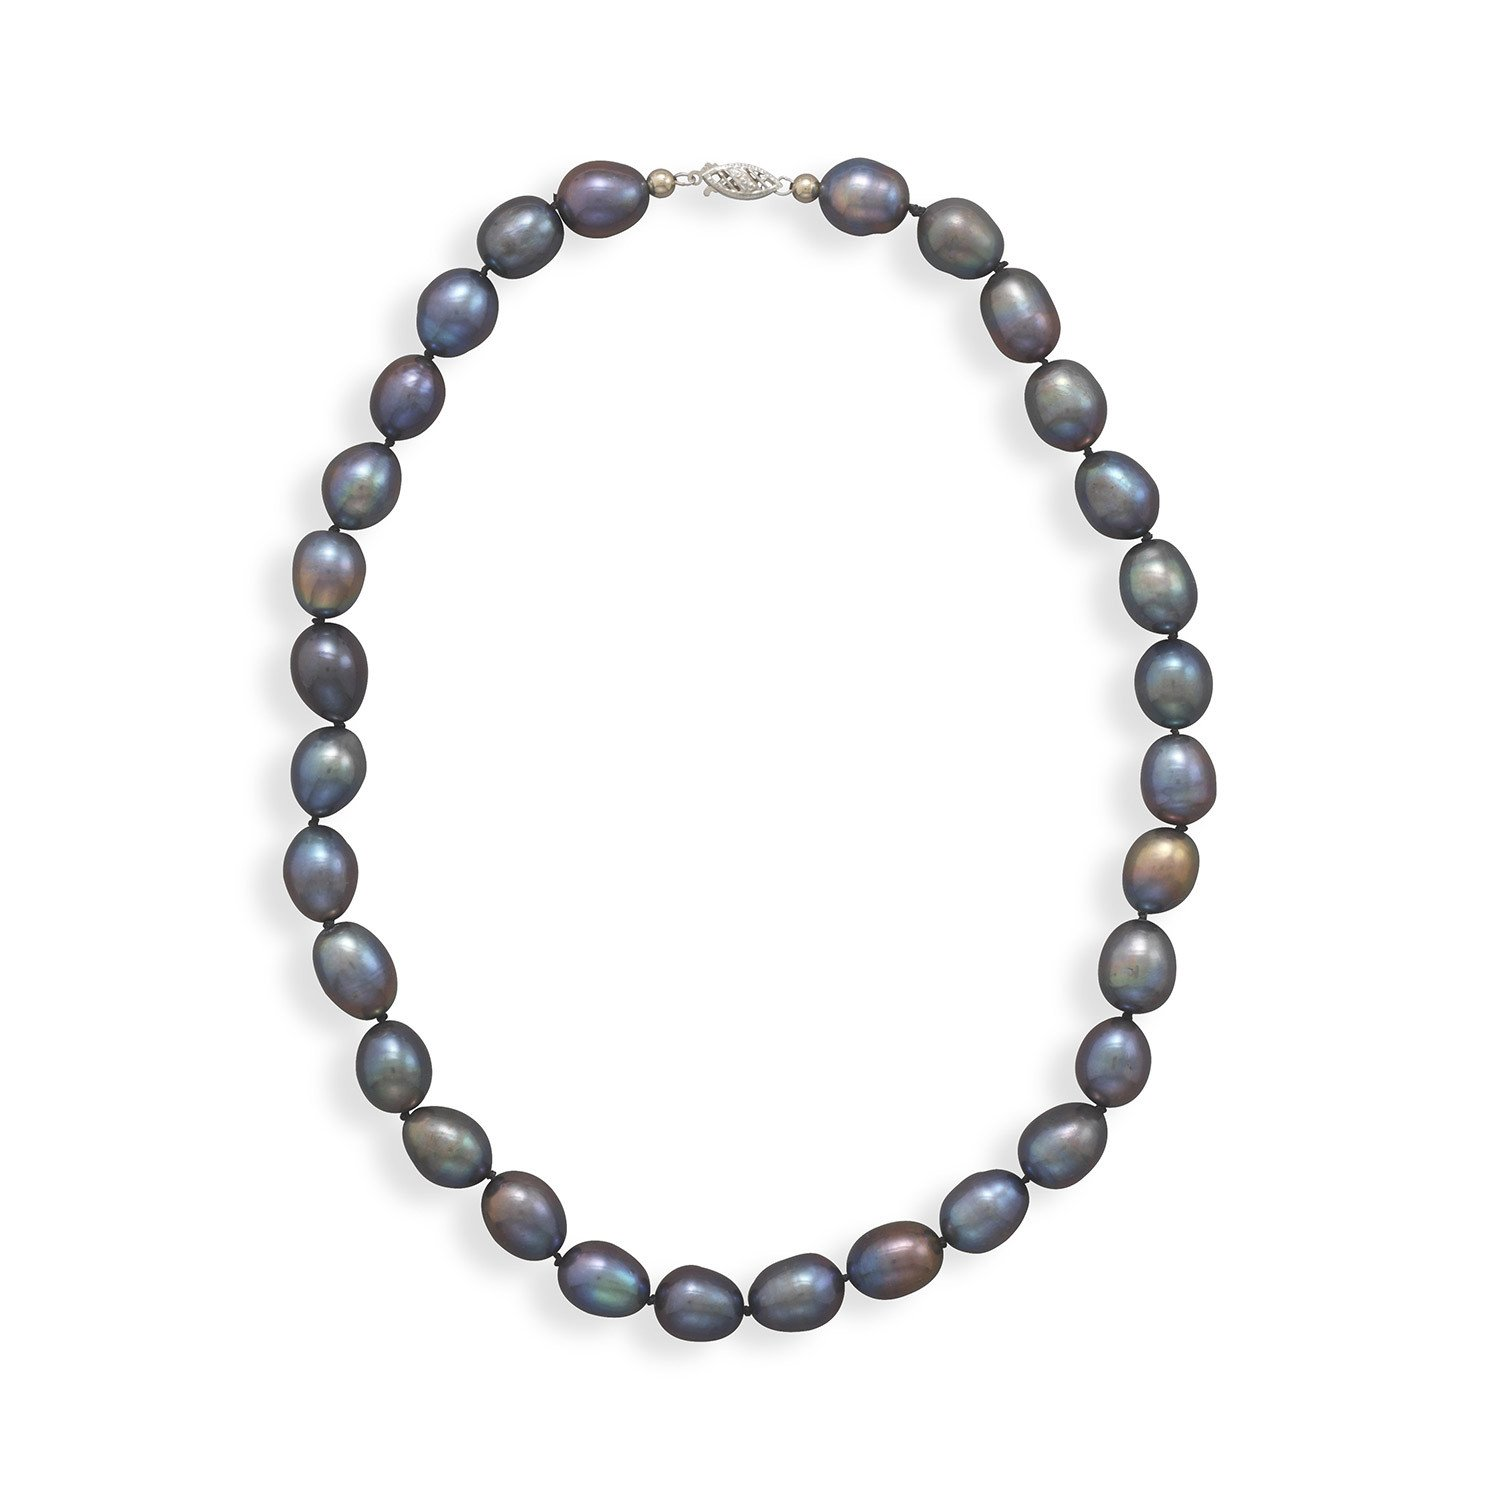 16″ Peacock Pearl Necklace with 14K White Gold Clasp